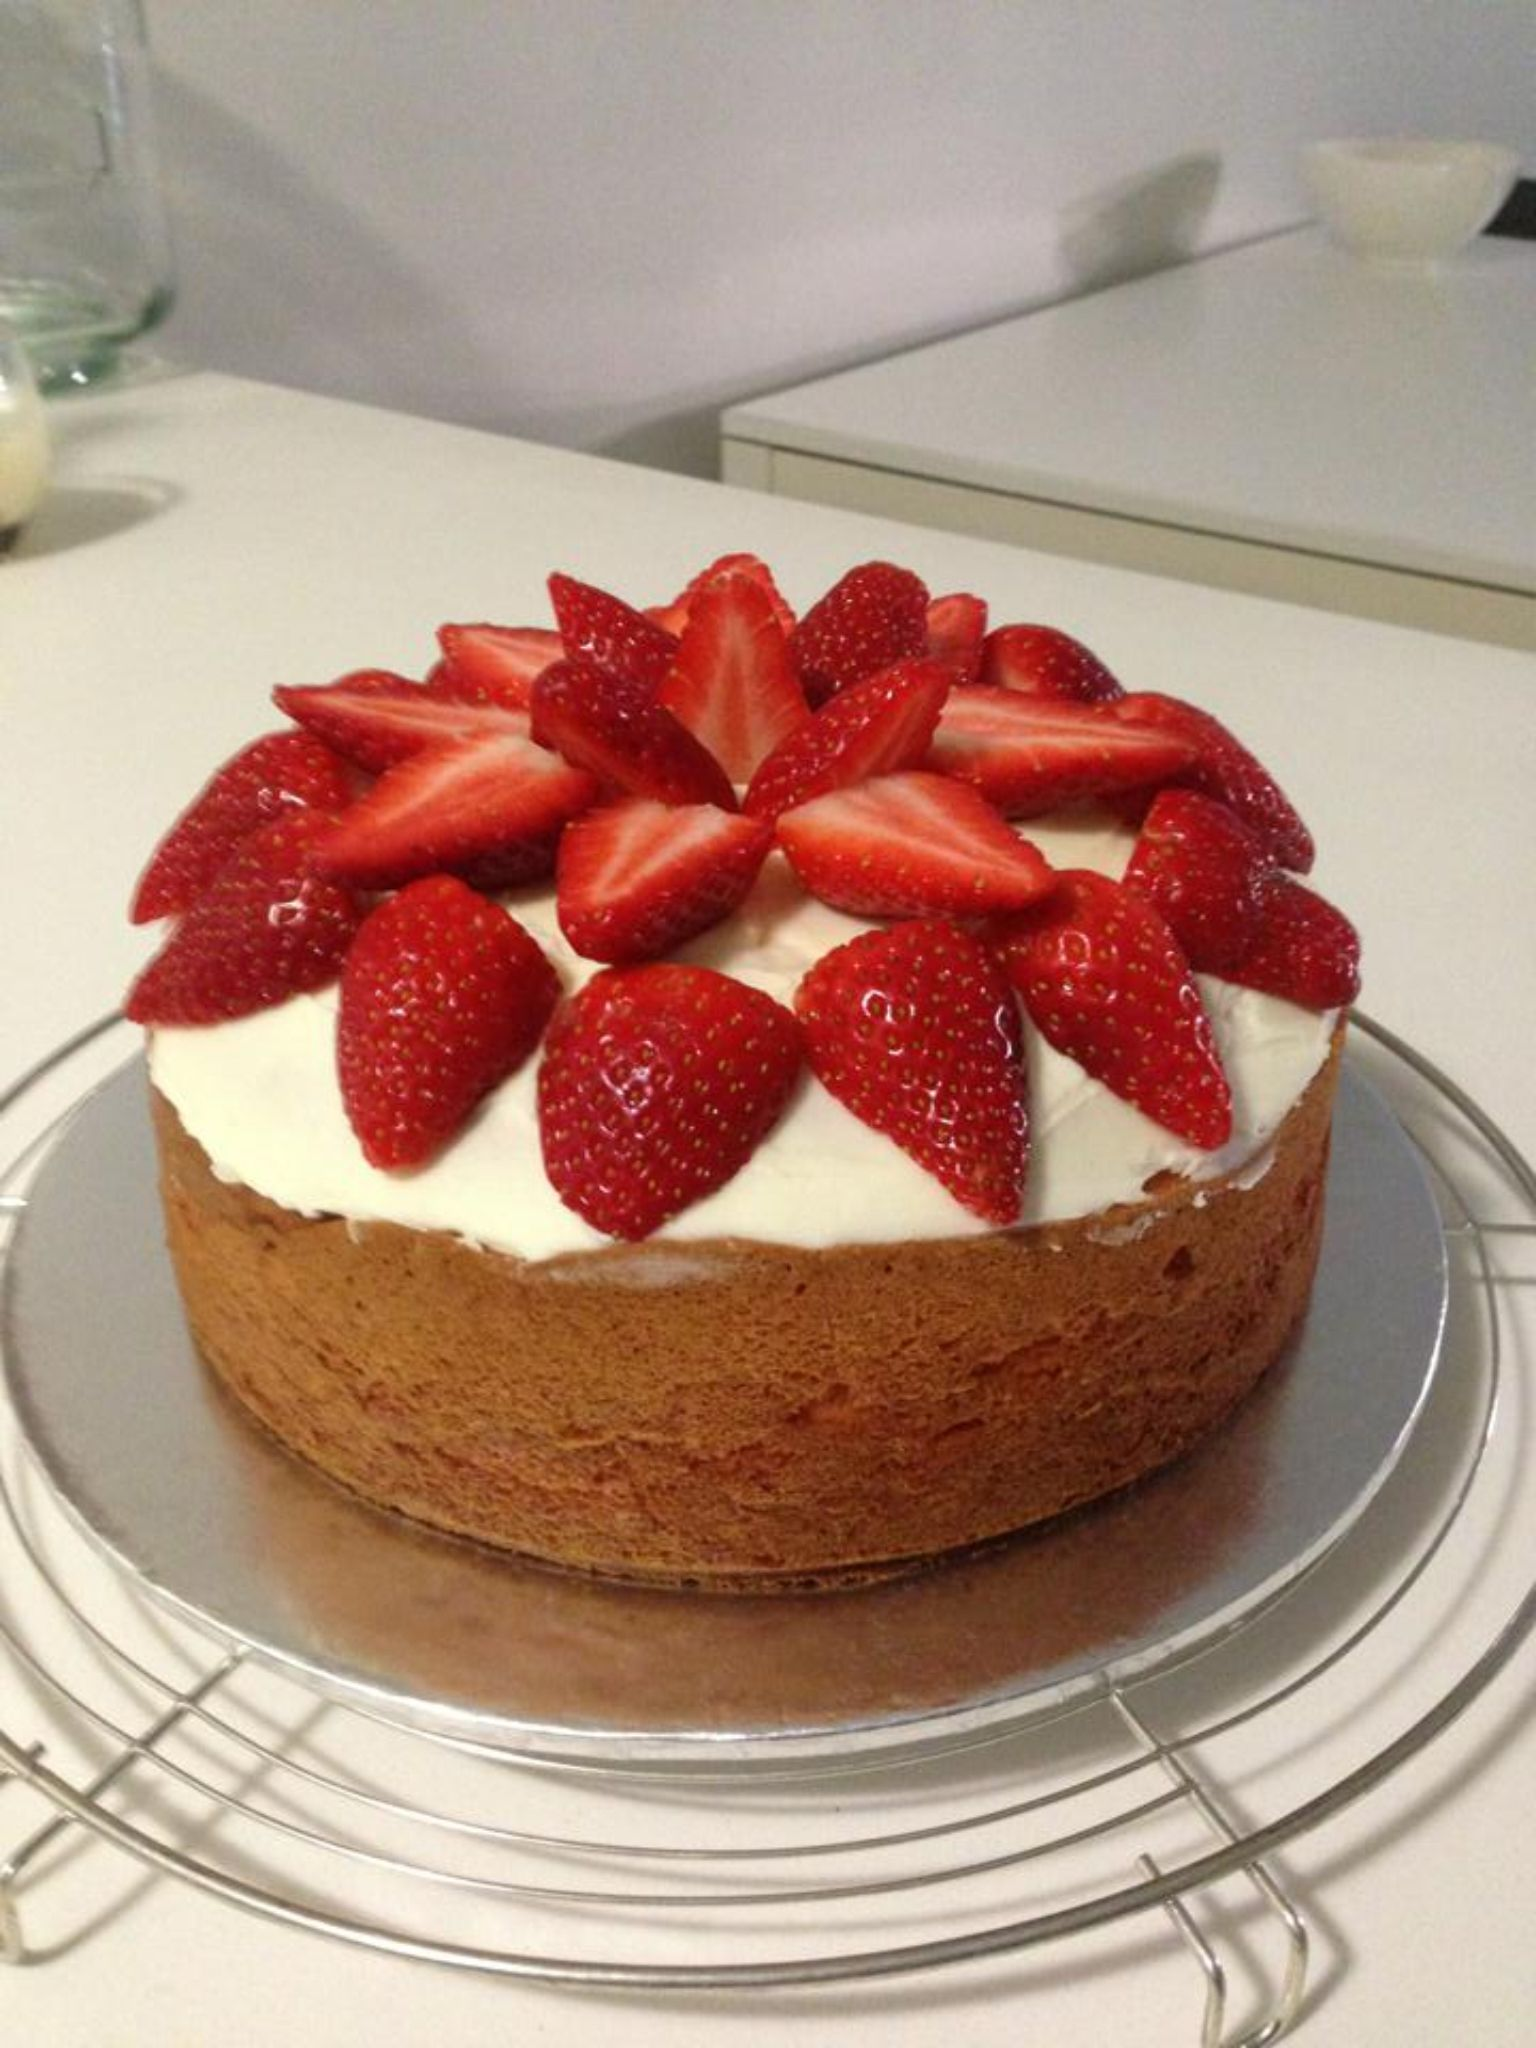 strawberry sponge cake essay Everybody loves a victoria sponge cake recipe, and this one is a real beauty packed with fresh strawberries, whipped cream and vanilla, it's sure to impress try making it for afternoon tea.